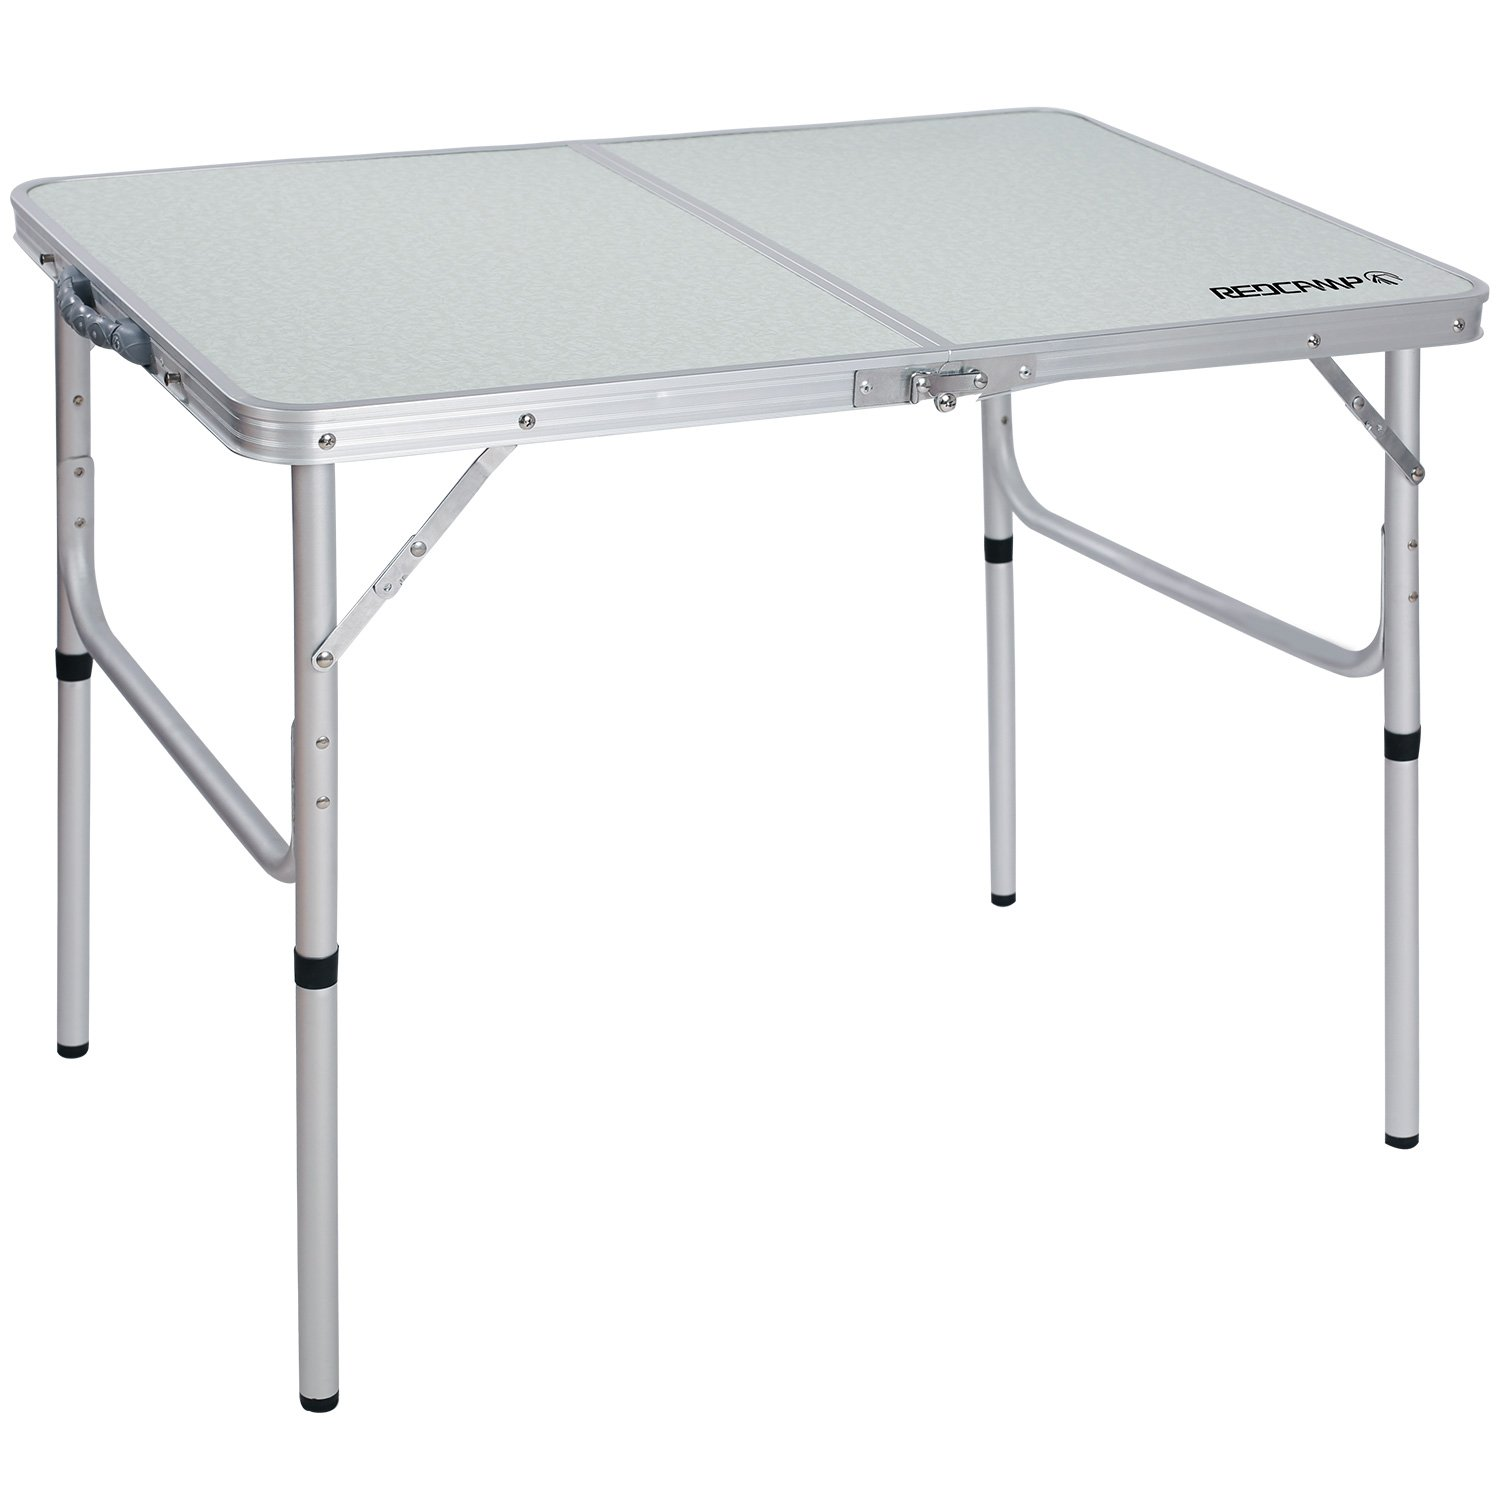 REDCAMP Aluminum Folding Table 3 Foot, Adjustable Height Lightweight Portable Camping Table for Picnic Beach Outdoor Indoor, White 36 x 24 inch by REDCAMP